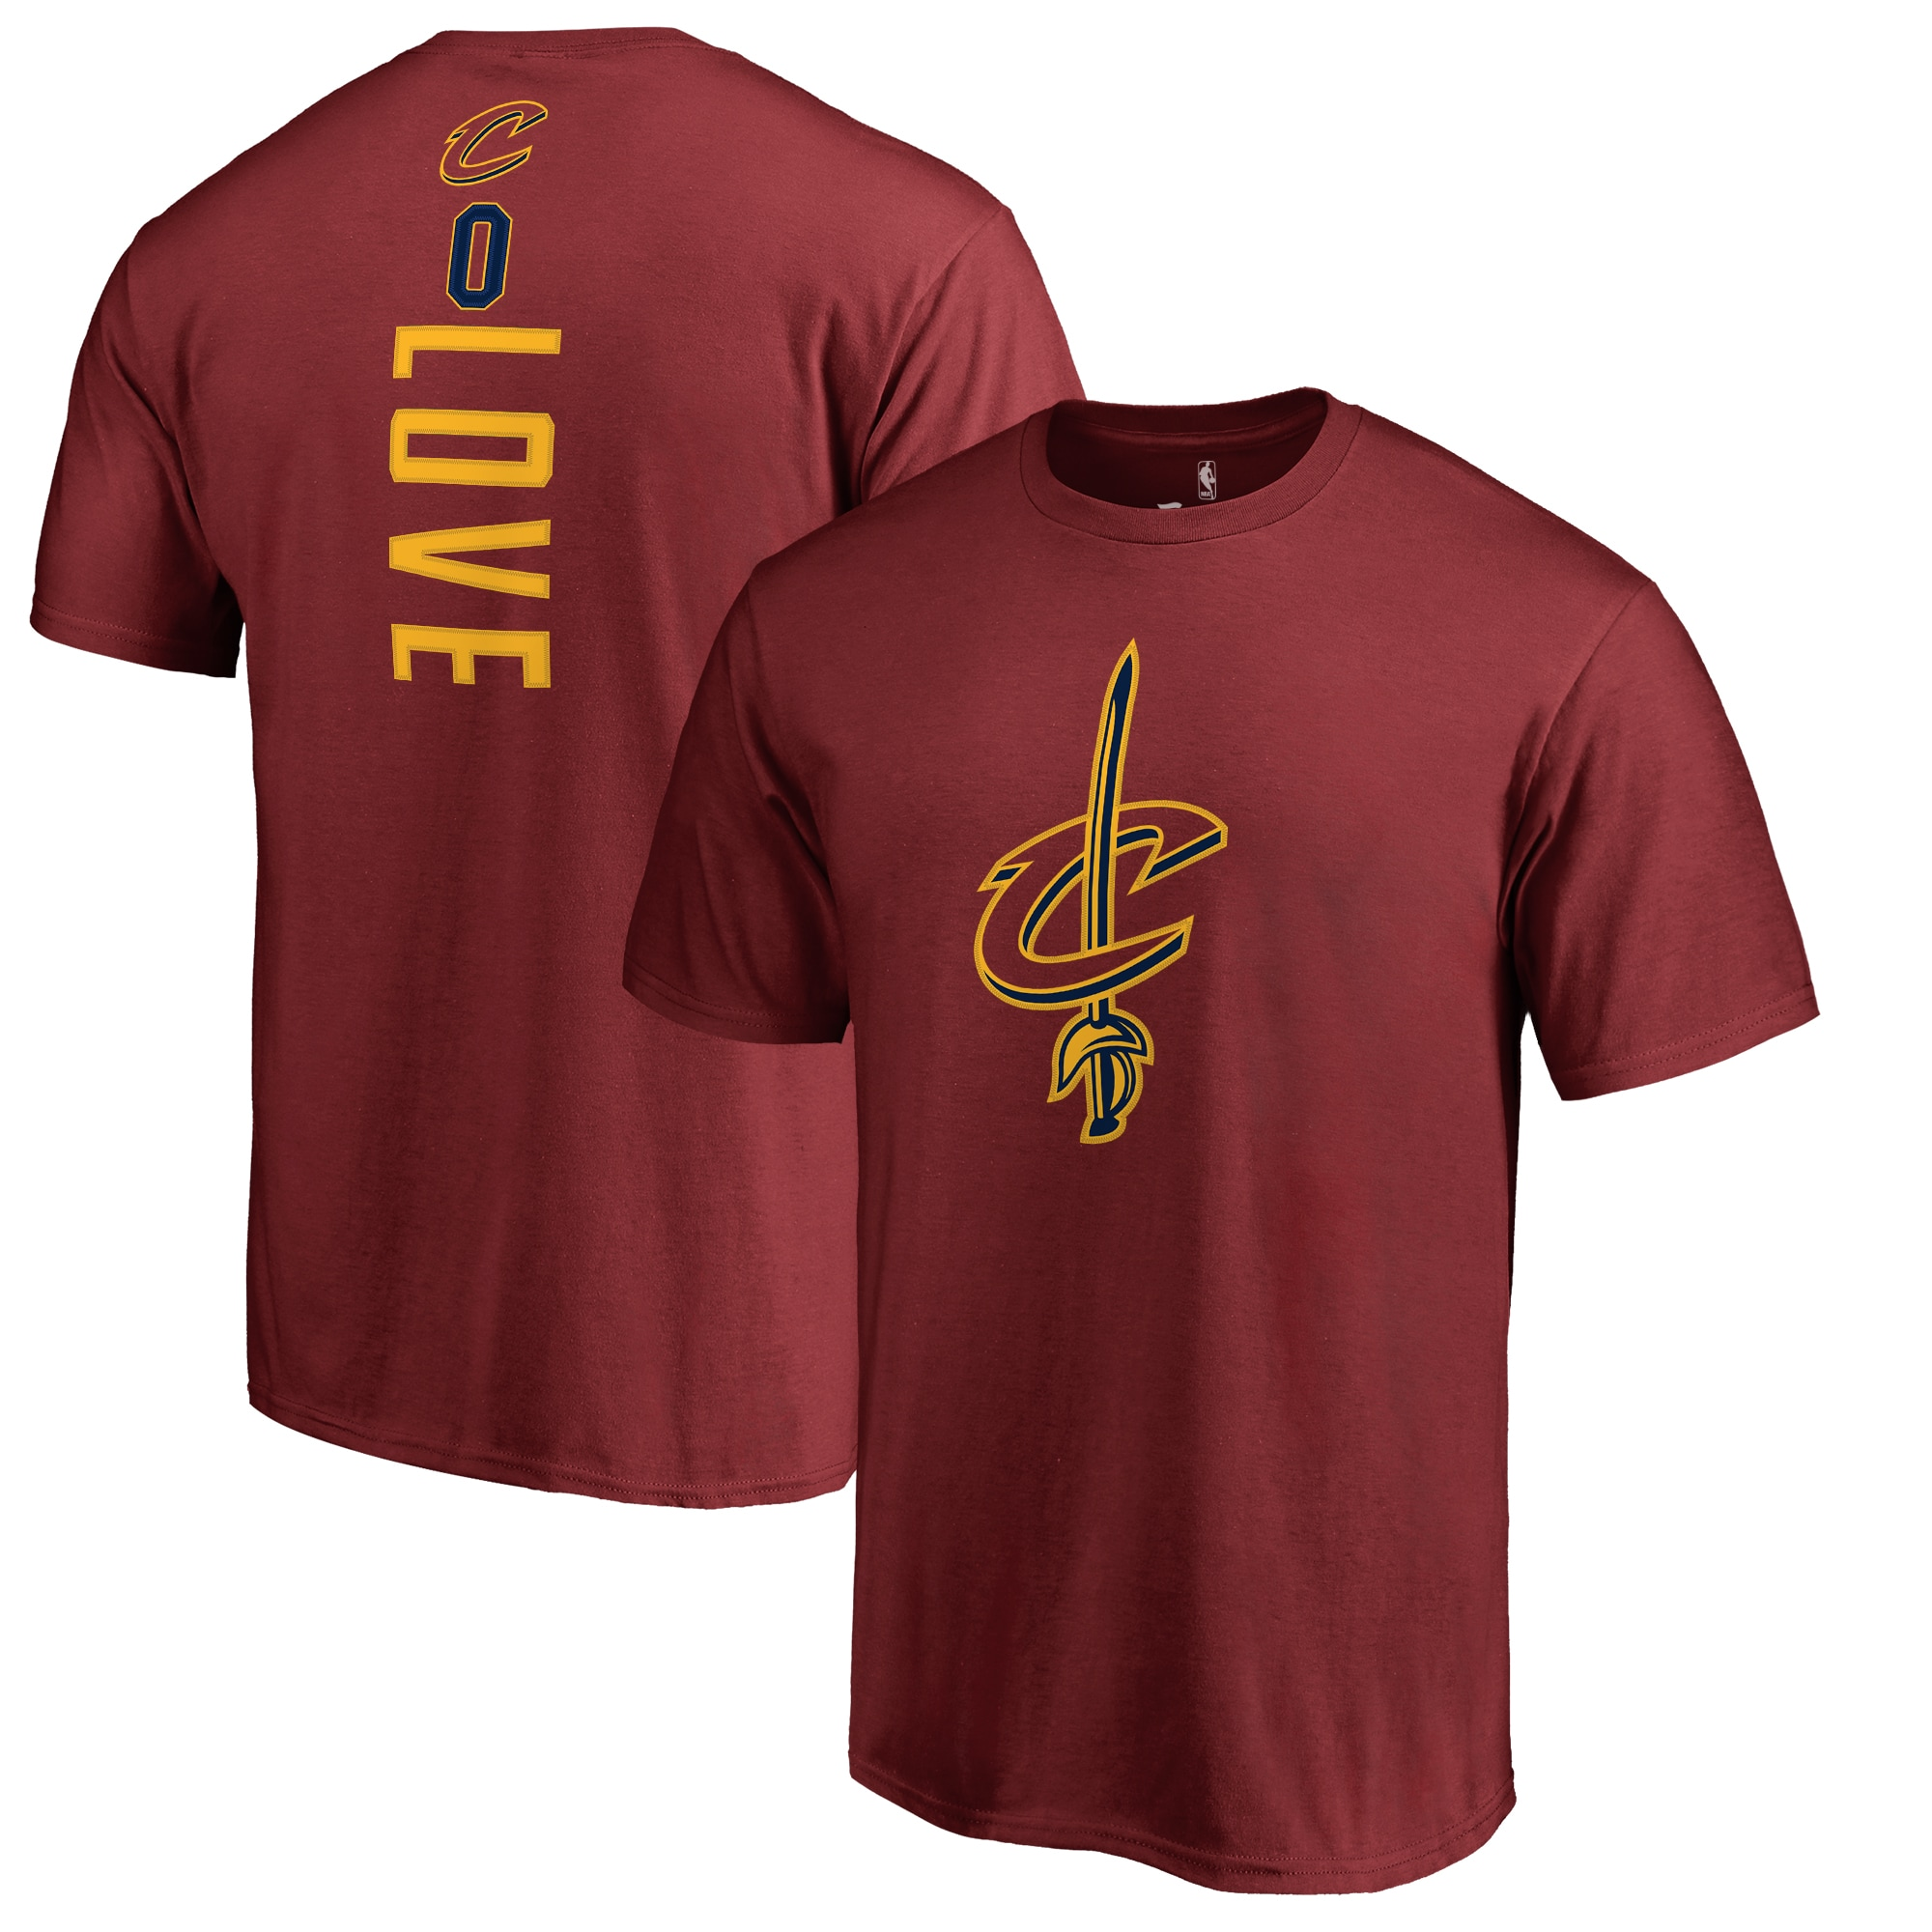 Kevin Love Cleveland Cavaliers Backer T-Shirt - Wine